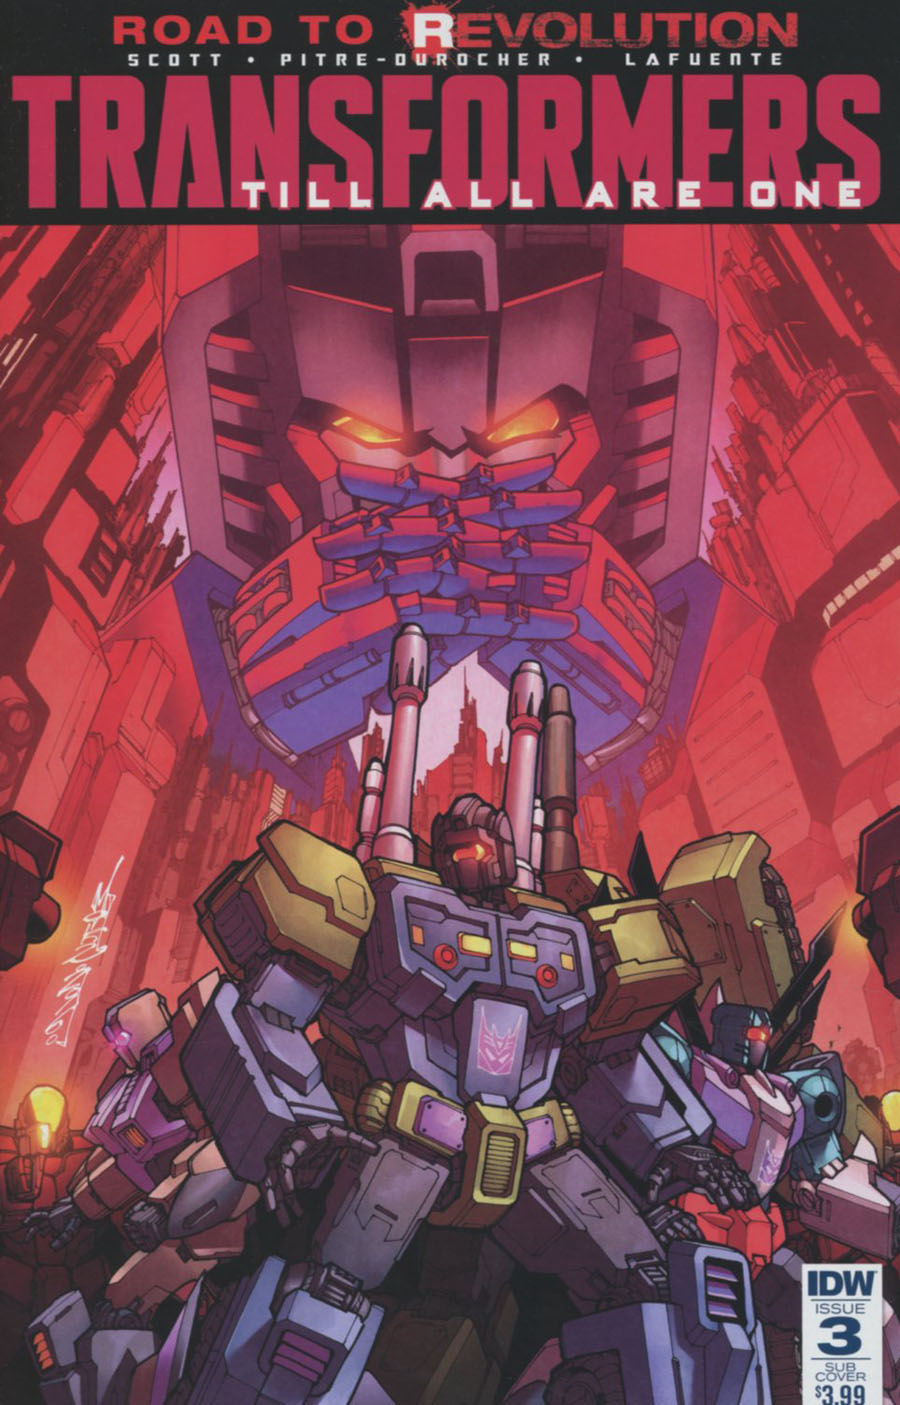 Transformers Till All Are One #3 Cover B Variant Alex Milne Subscription Cover (Revolution Tie-In)